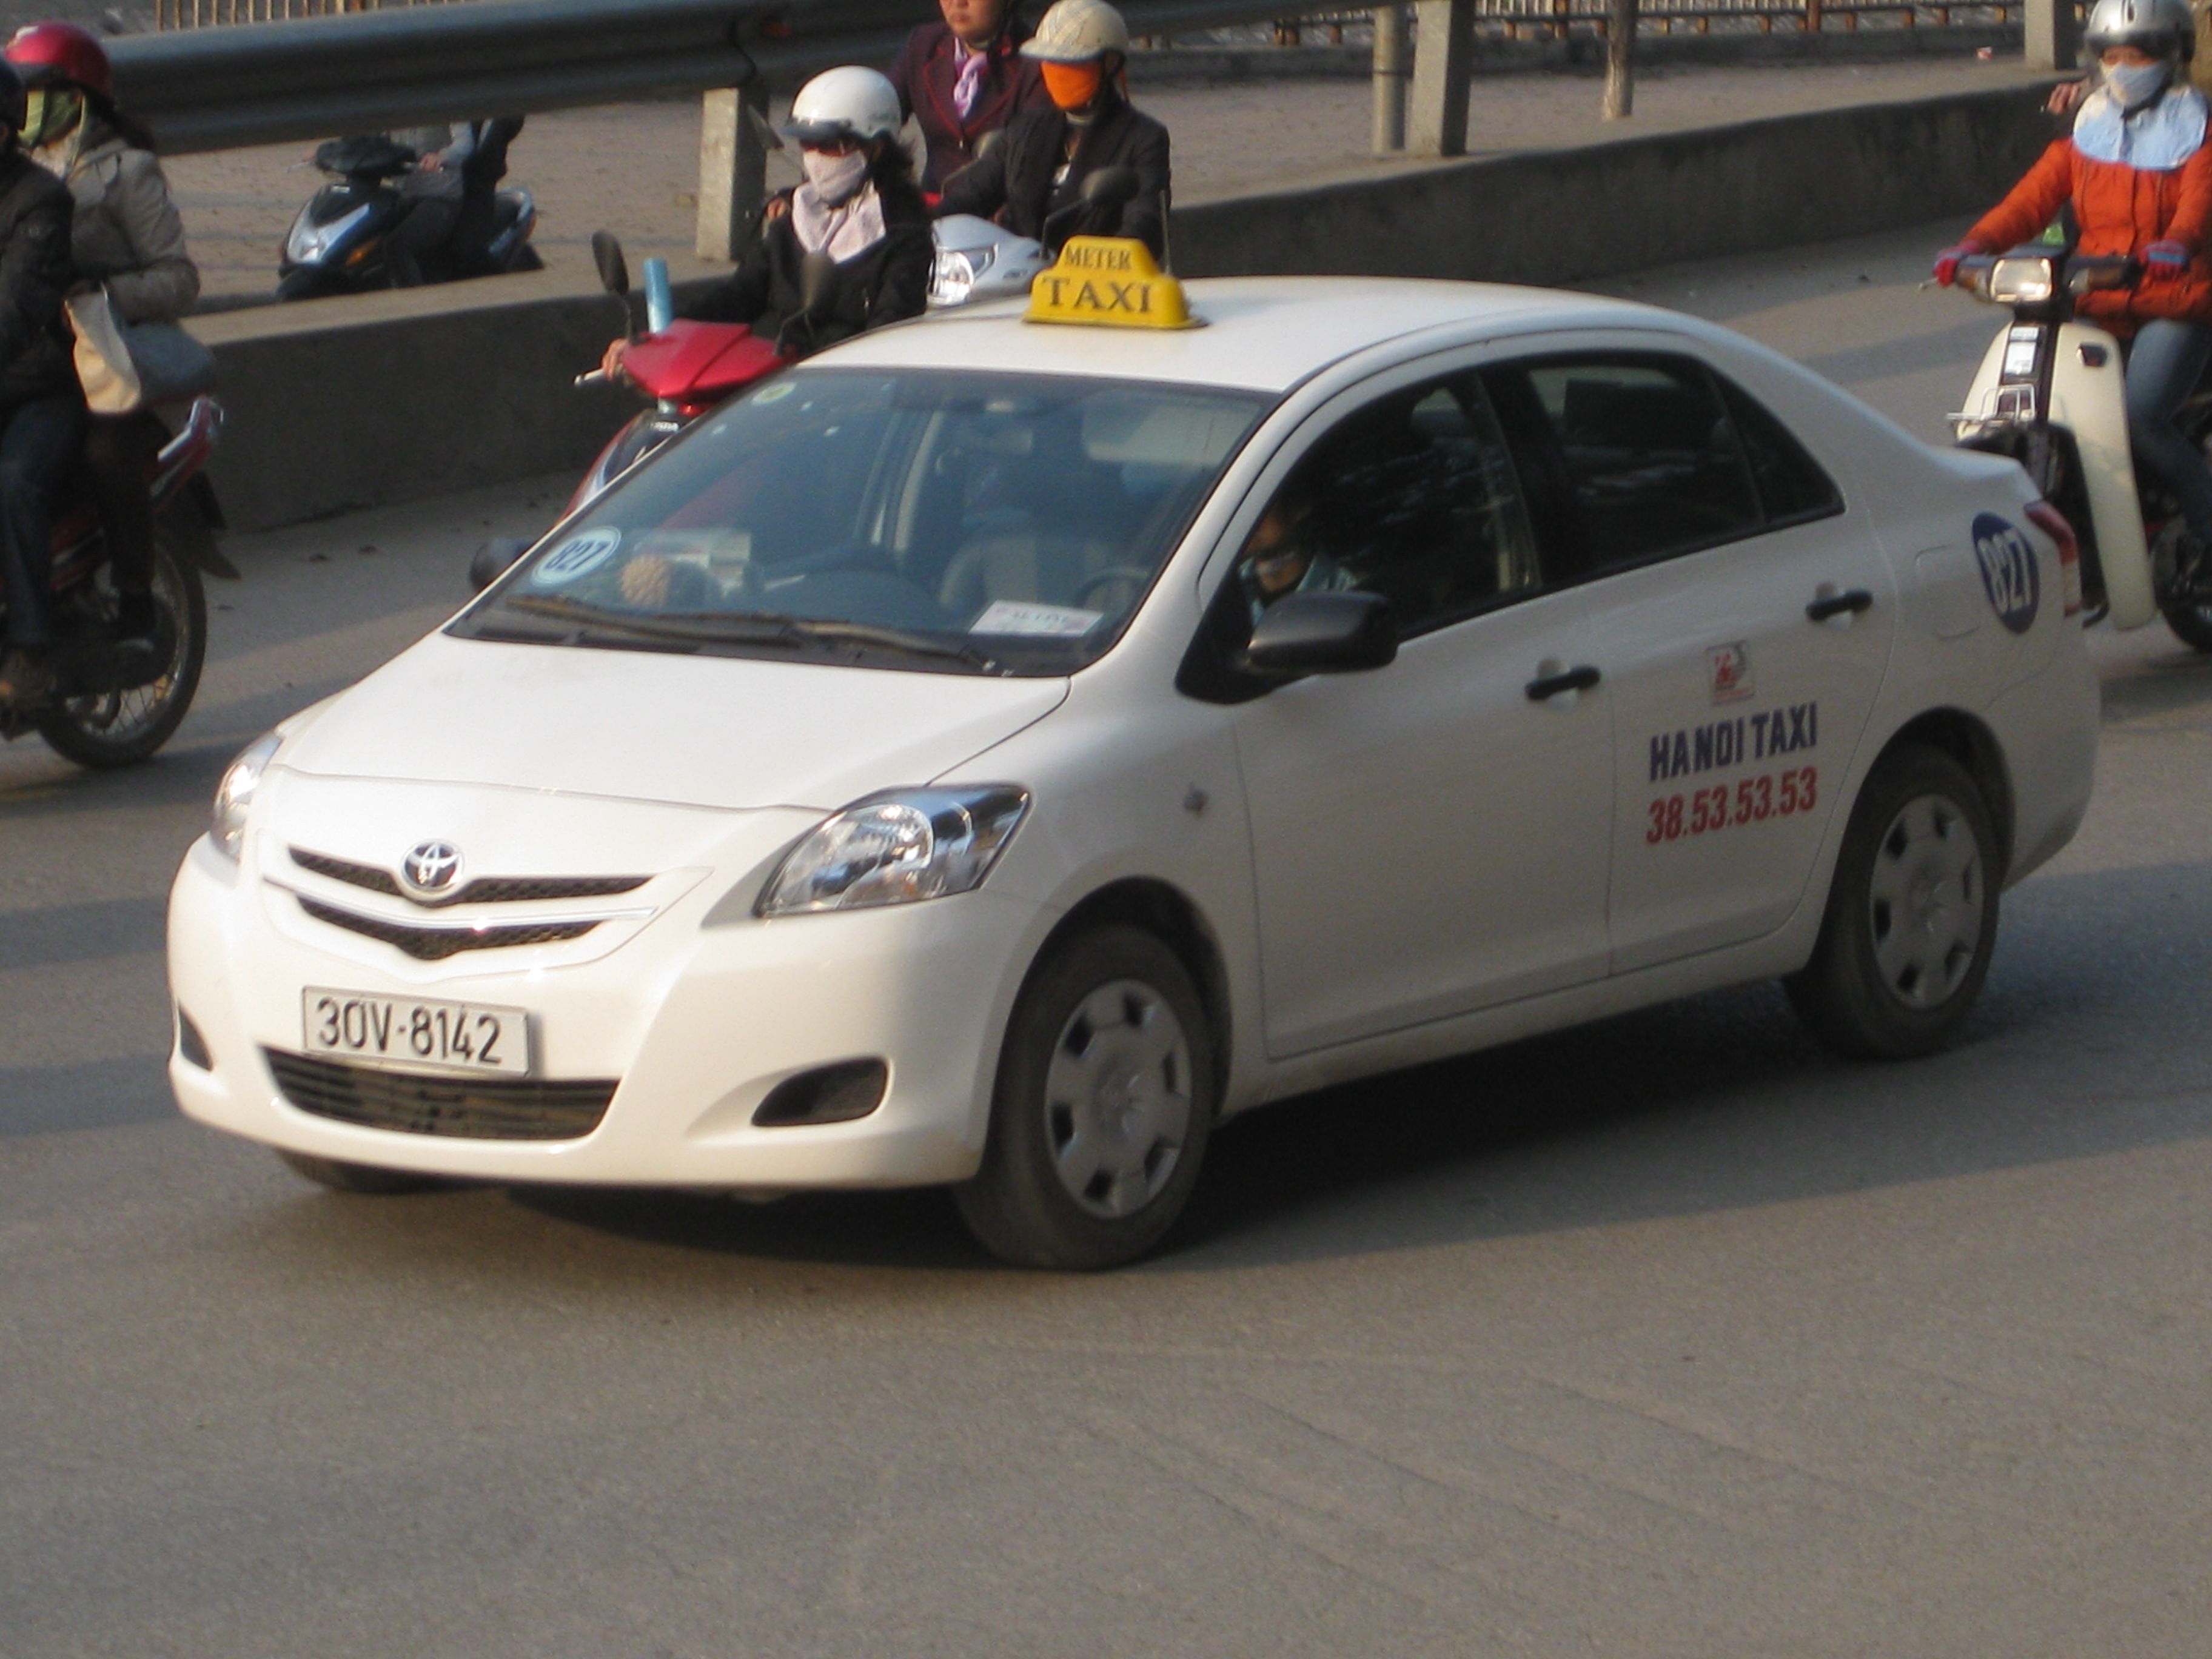 On street - Toyota Vios Taxi | Flickr - Photo Sharing!